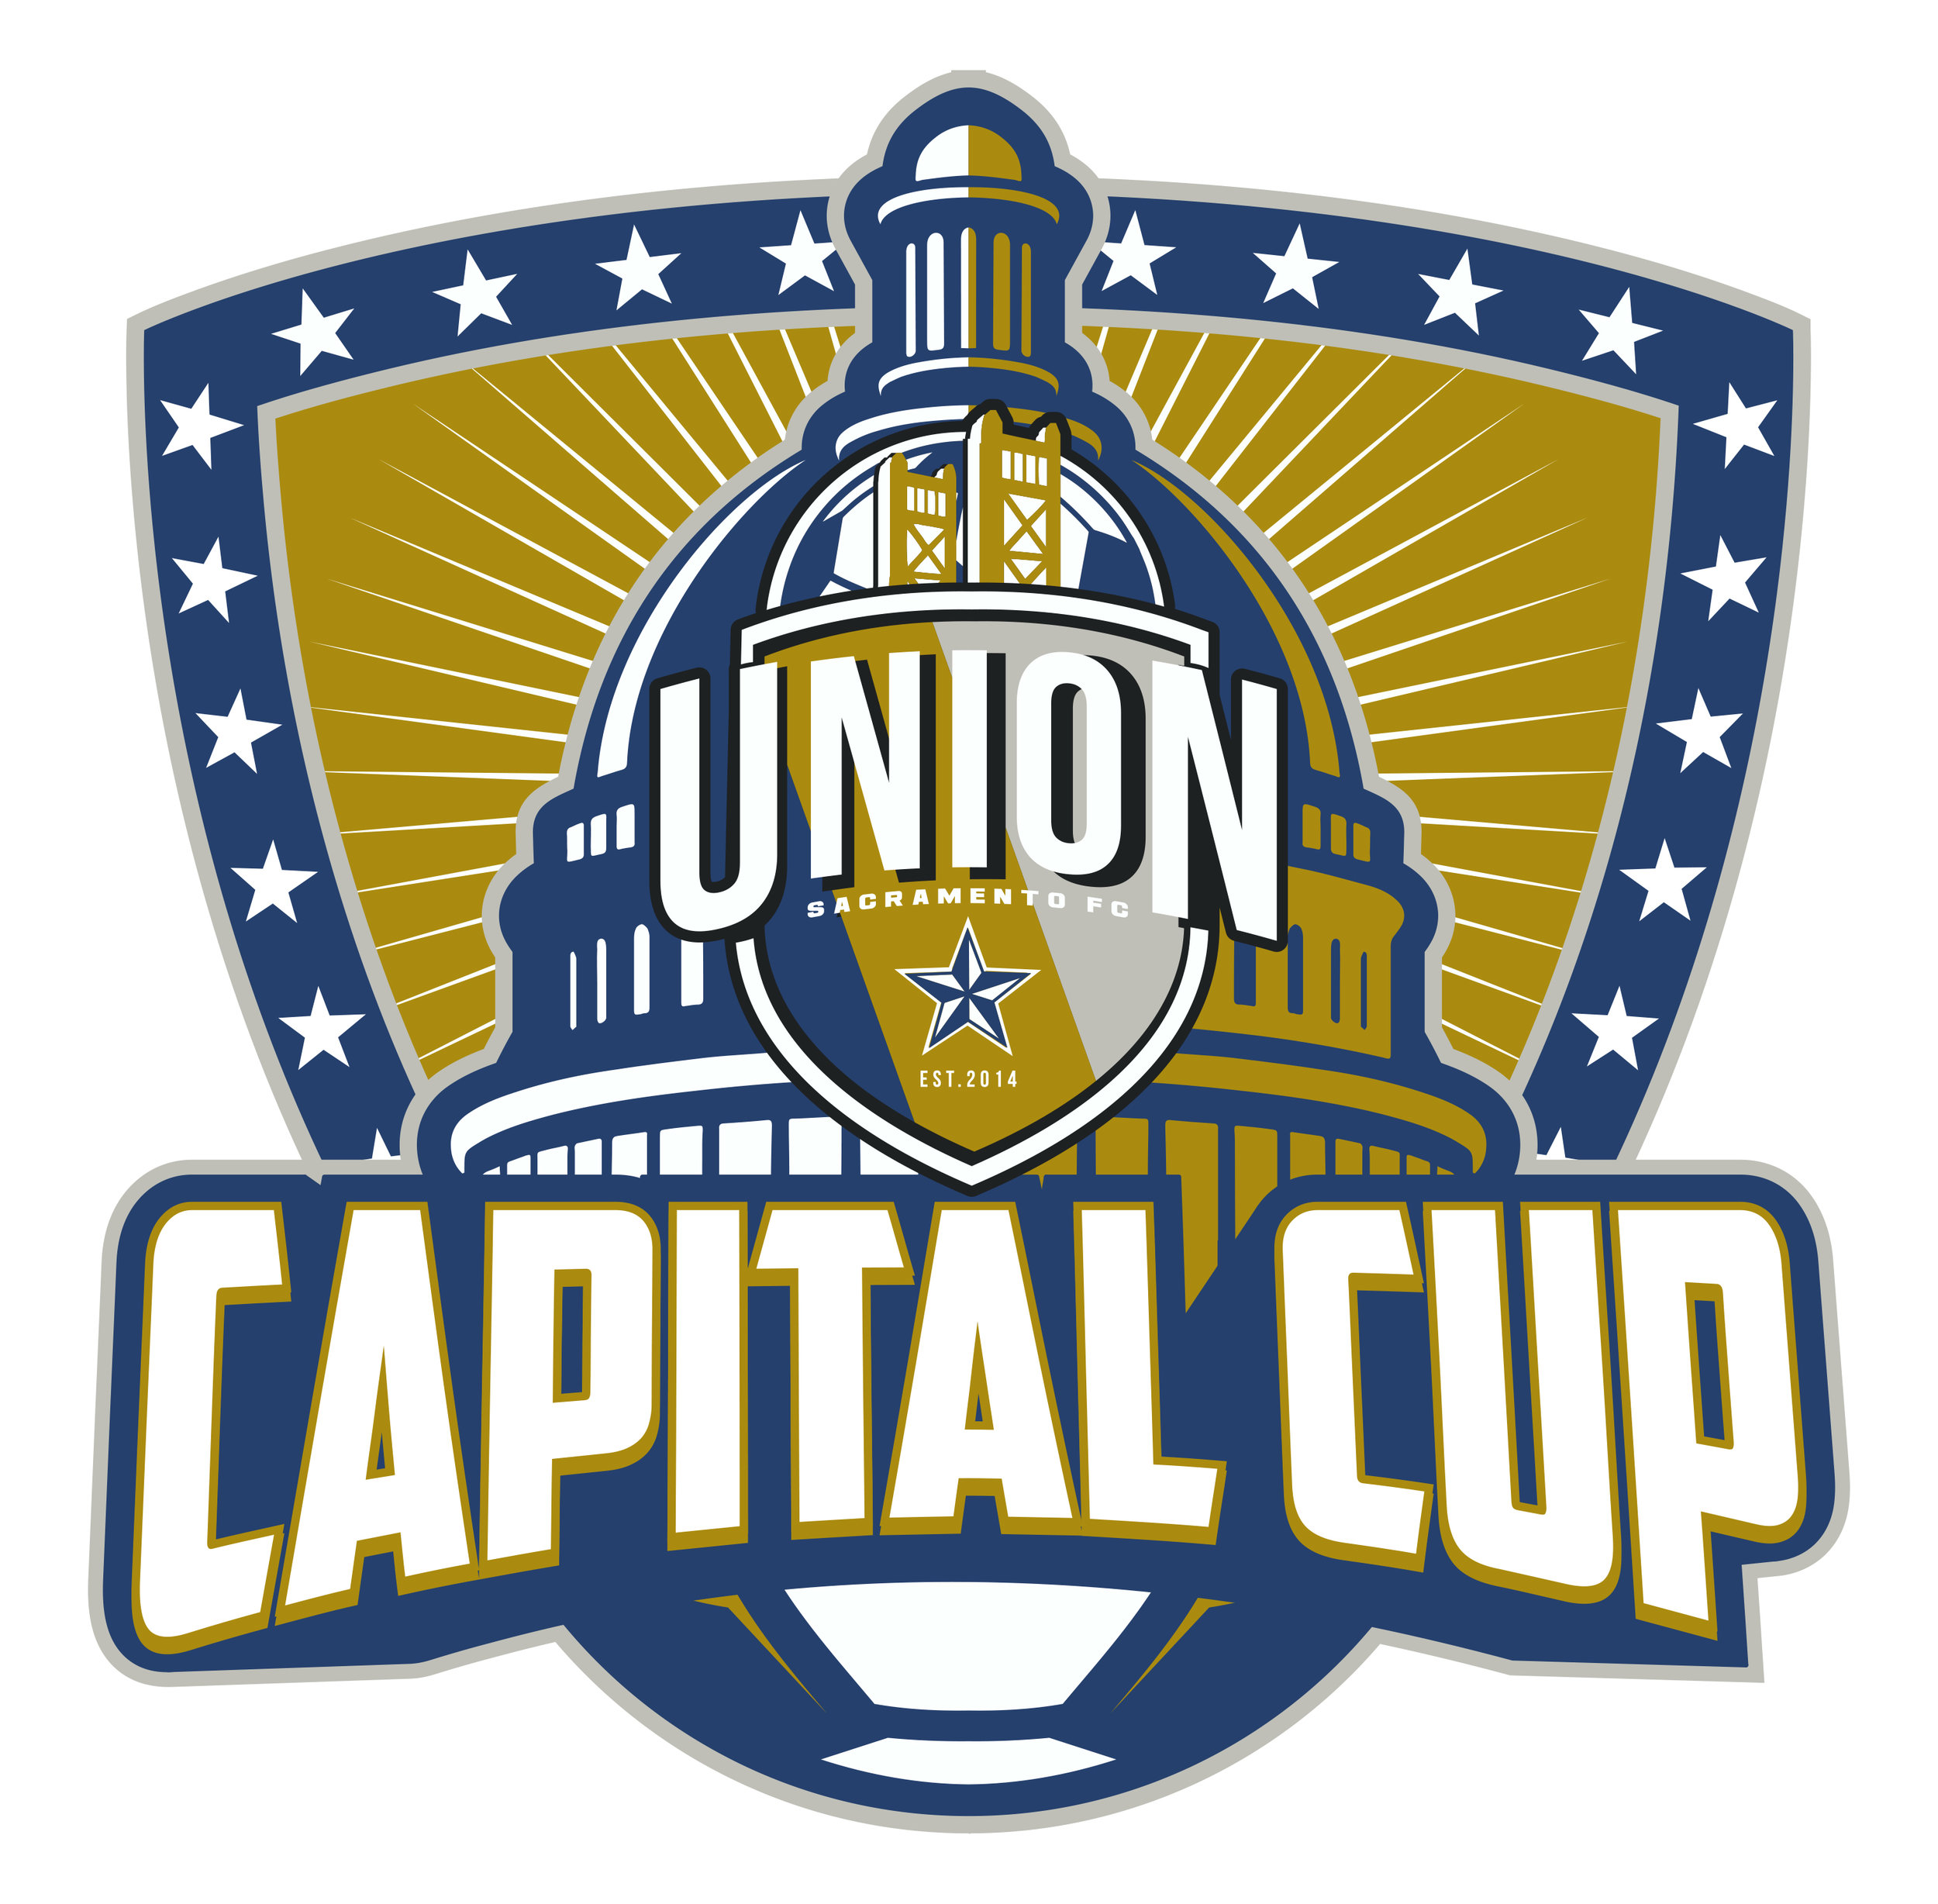 Union-CapitalCup.jpg